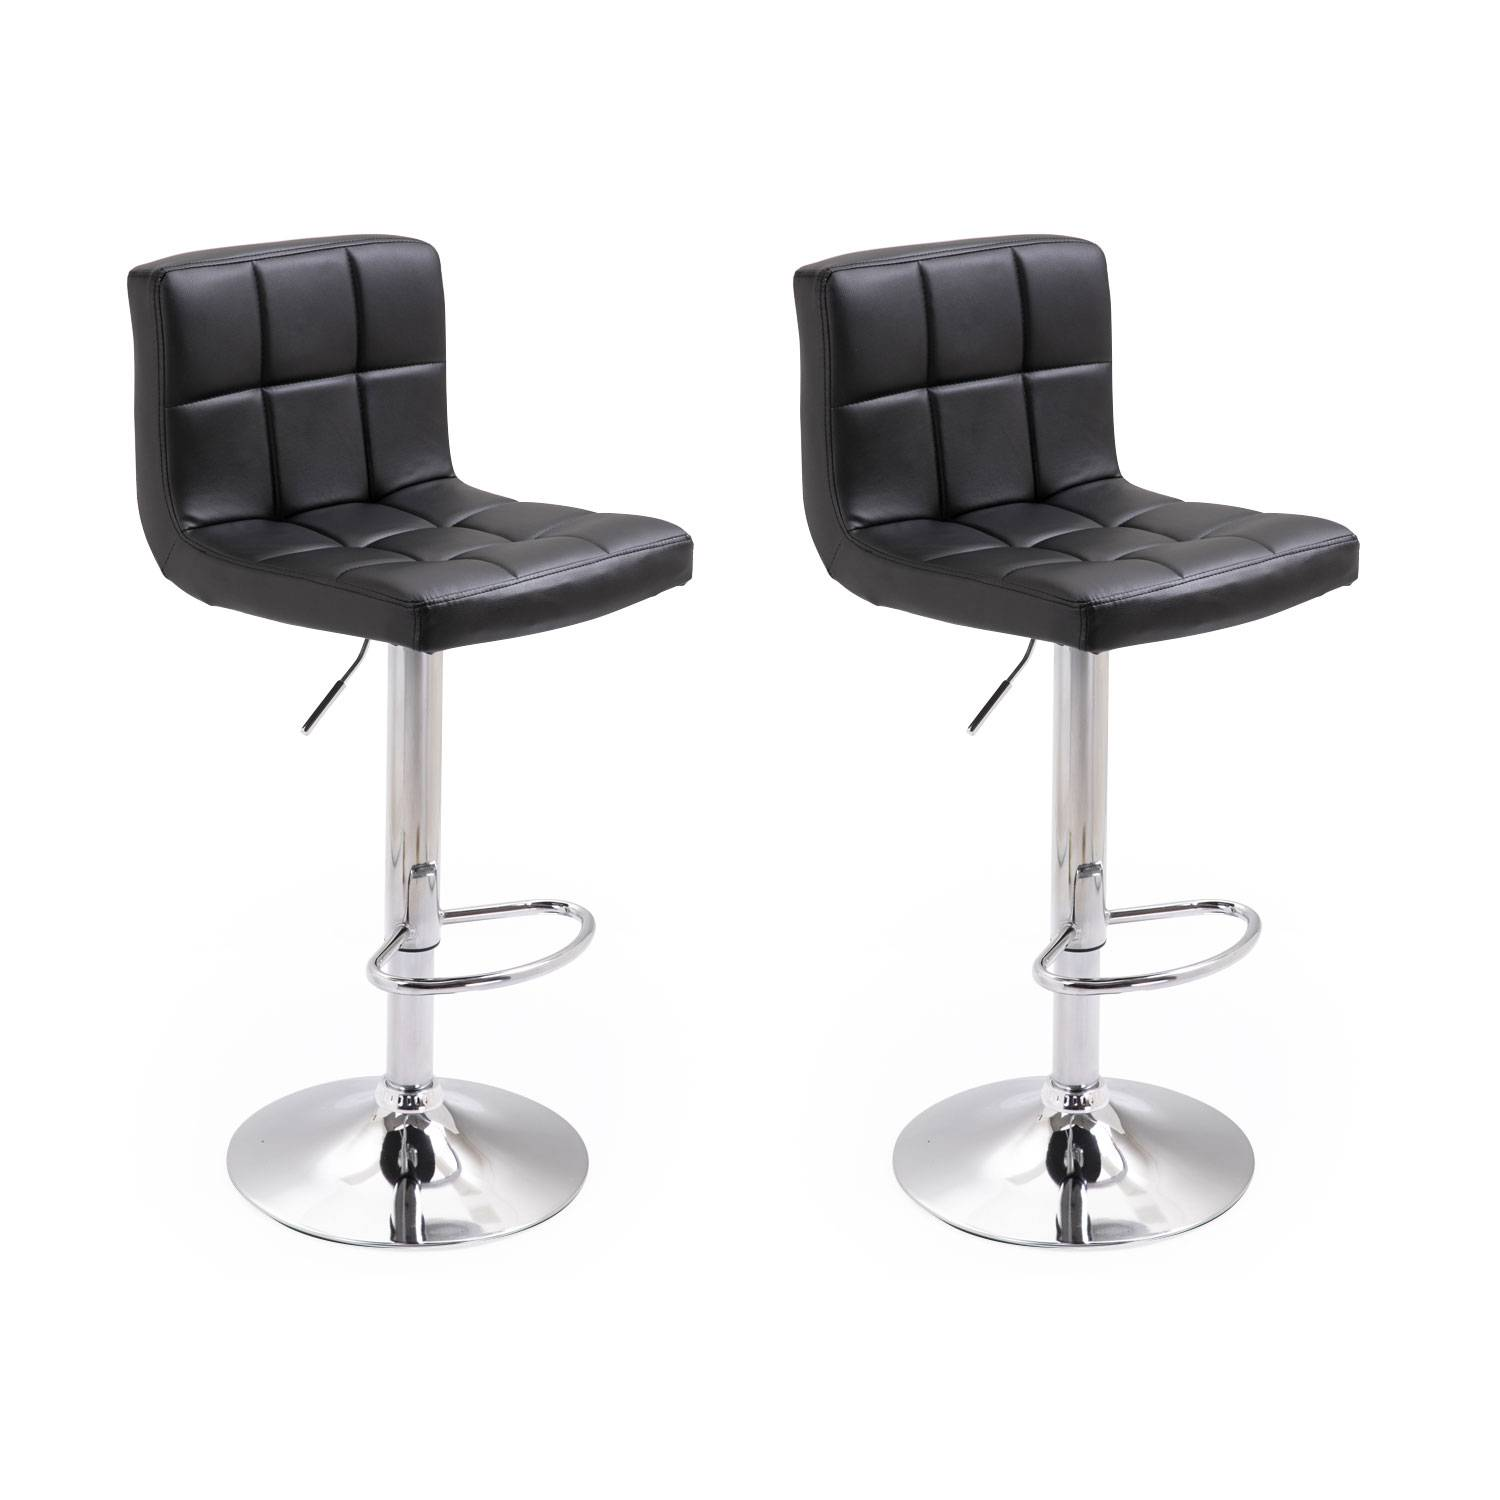 Tabourets De Bar Simili Cuir Noir Lot De 2 Tabourets De Bar Noir Mike